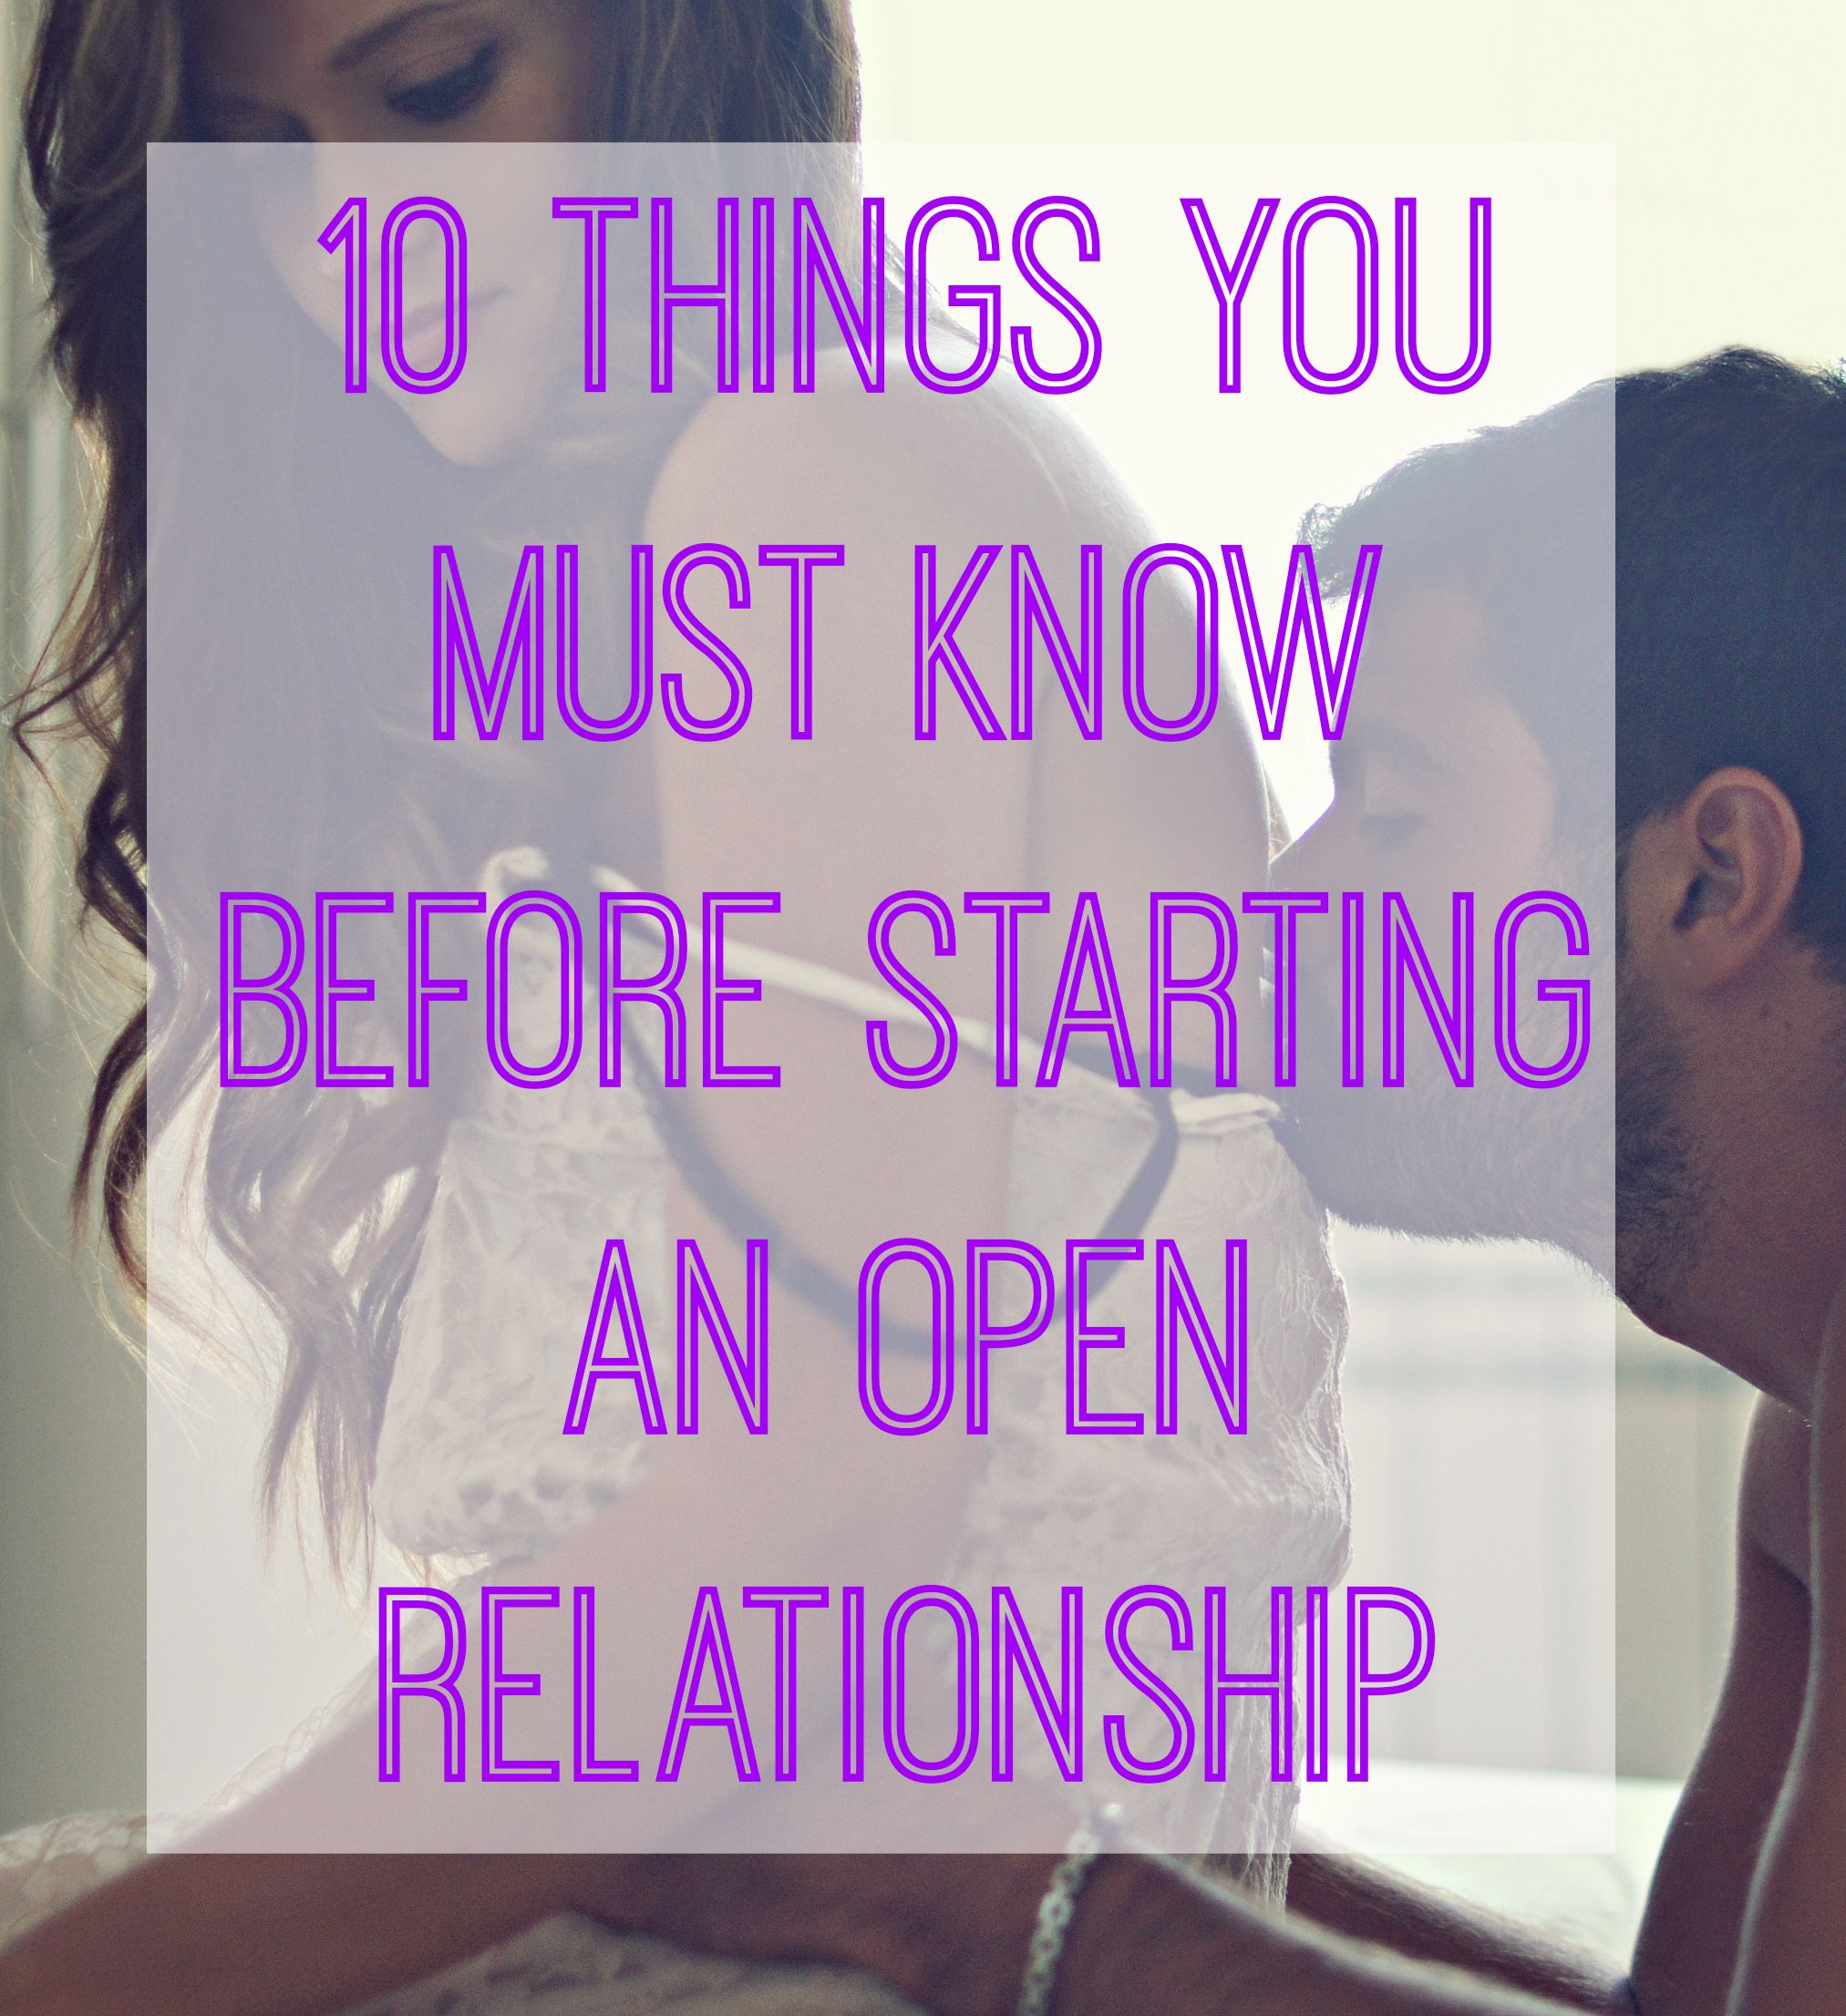 What to do before starting online dating